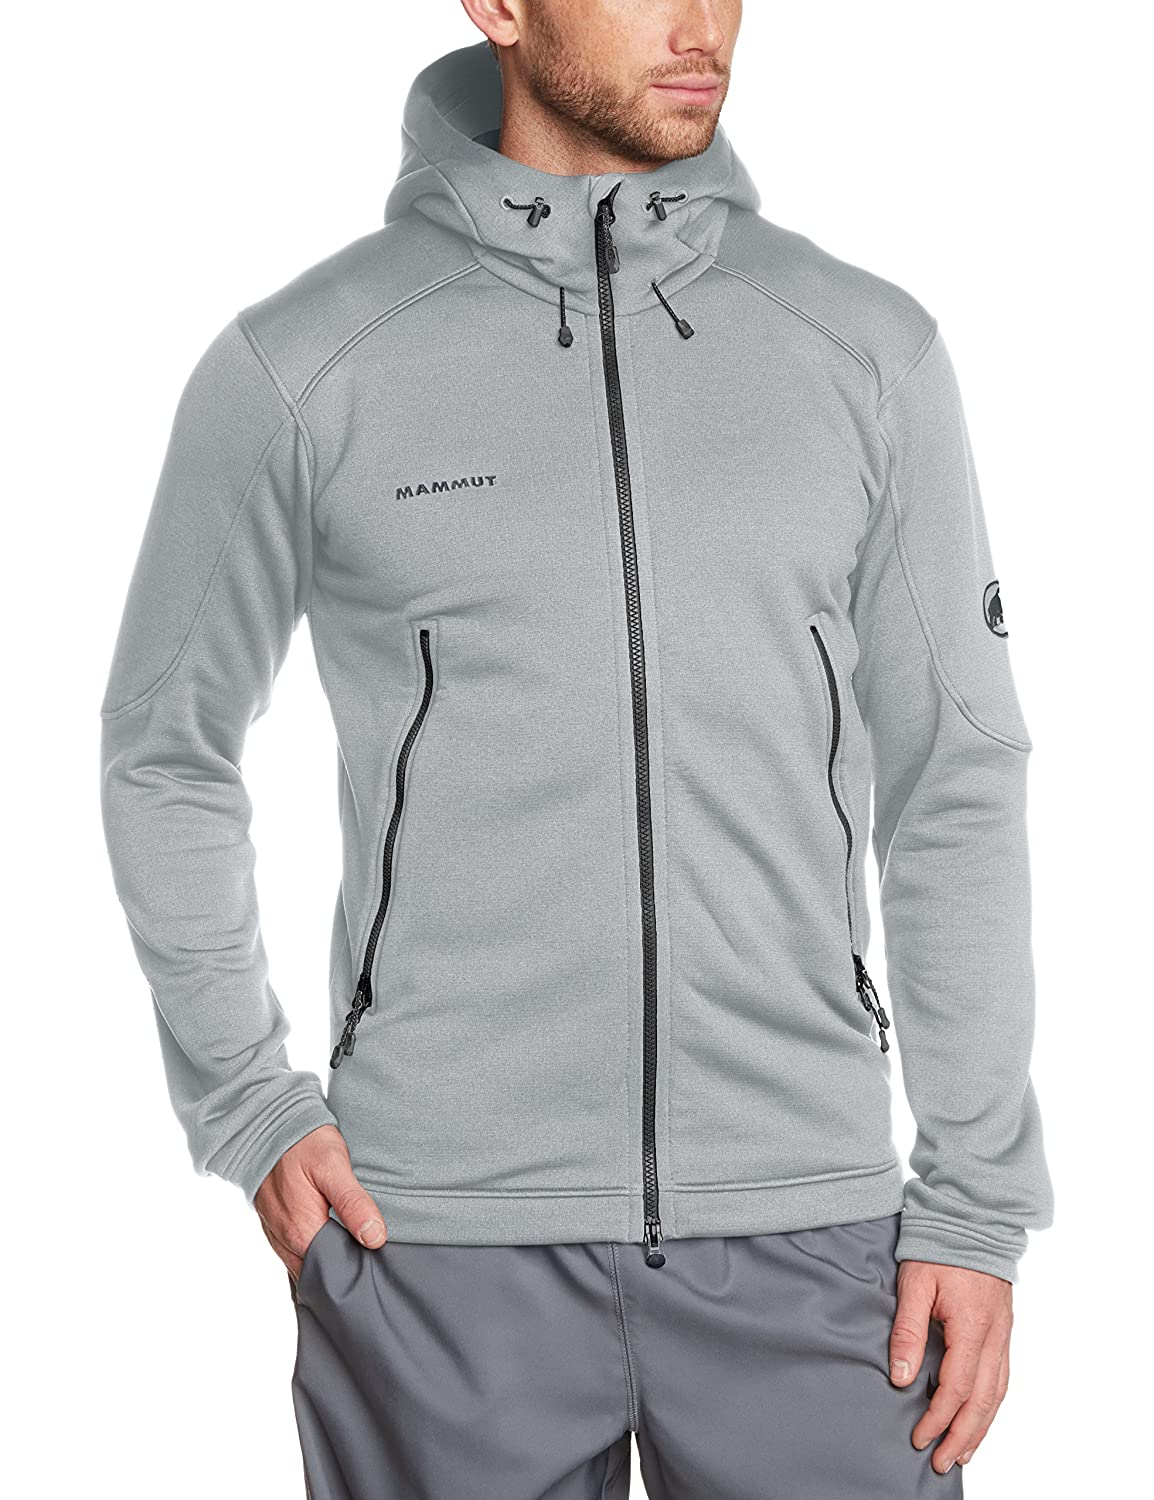 Mammut Herren Jacke Trift Hooded Midlayer